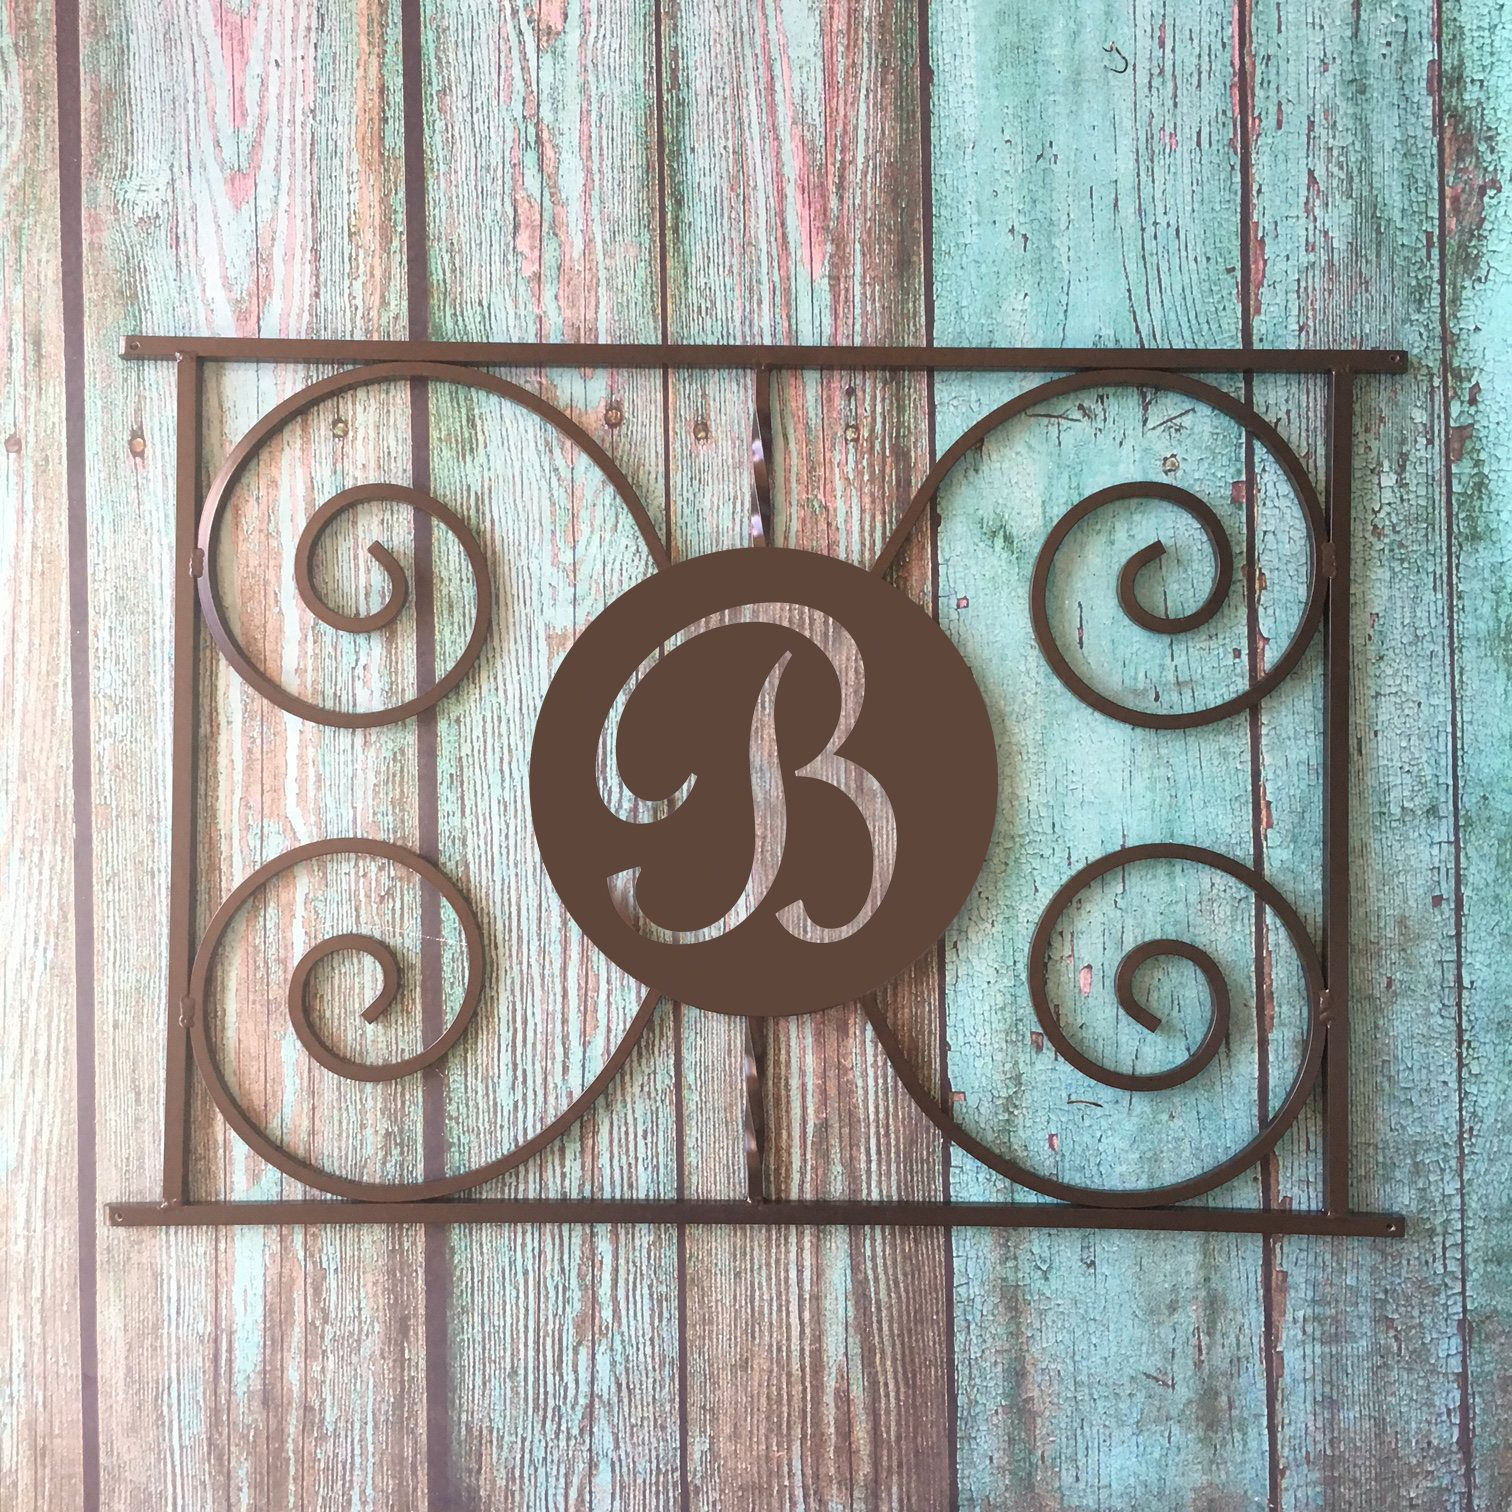 Monogram Design Screen Door Grille Protect And Beautify Easy Install Handcrafted Many Colors Aluminum Custom Sizes Initial Letter Screen Door Grilles Screen Door Grill Door Design